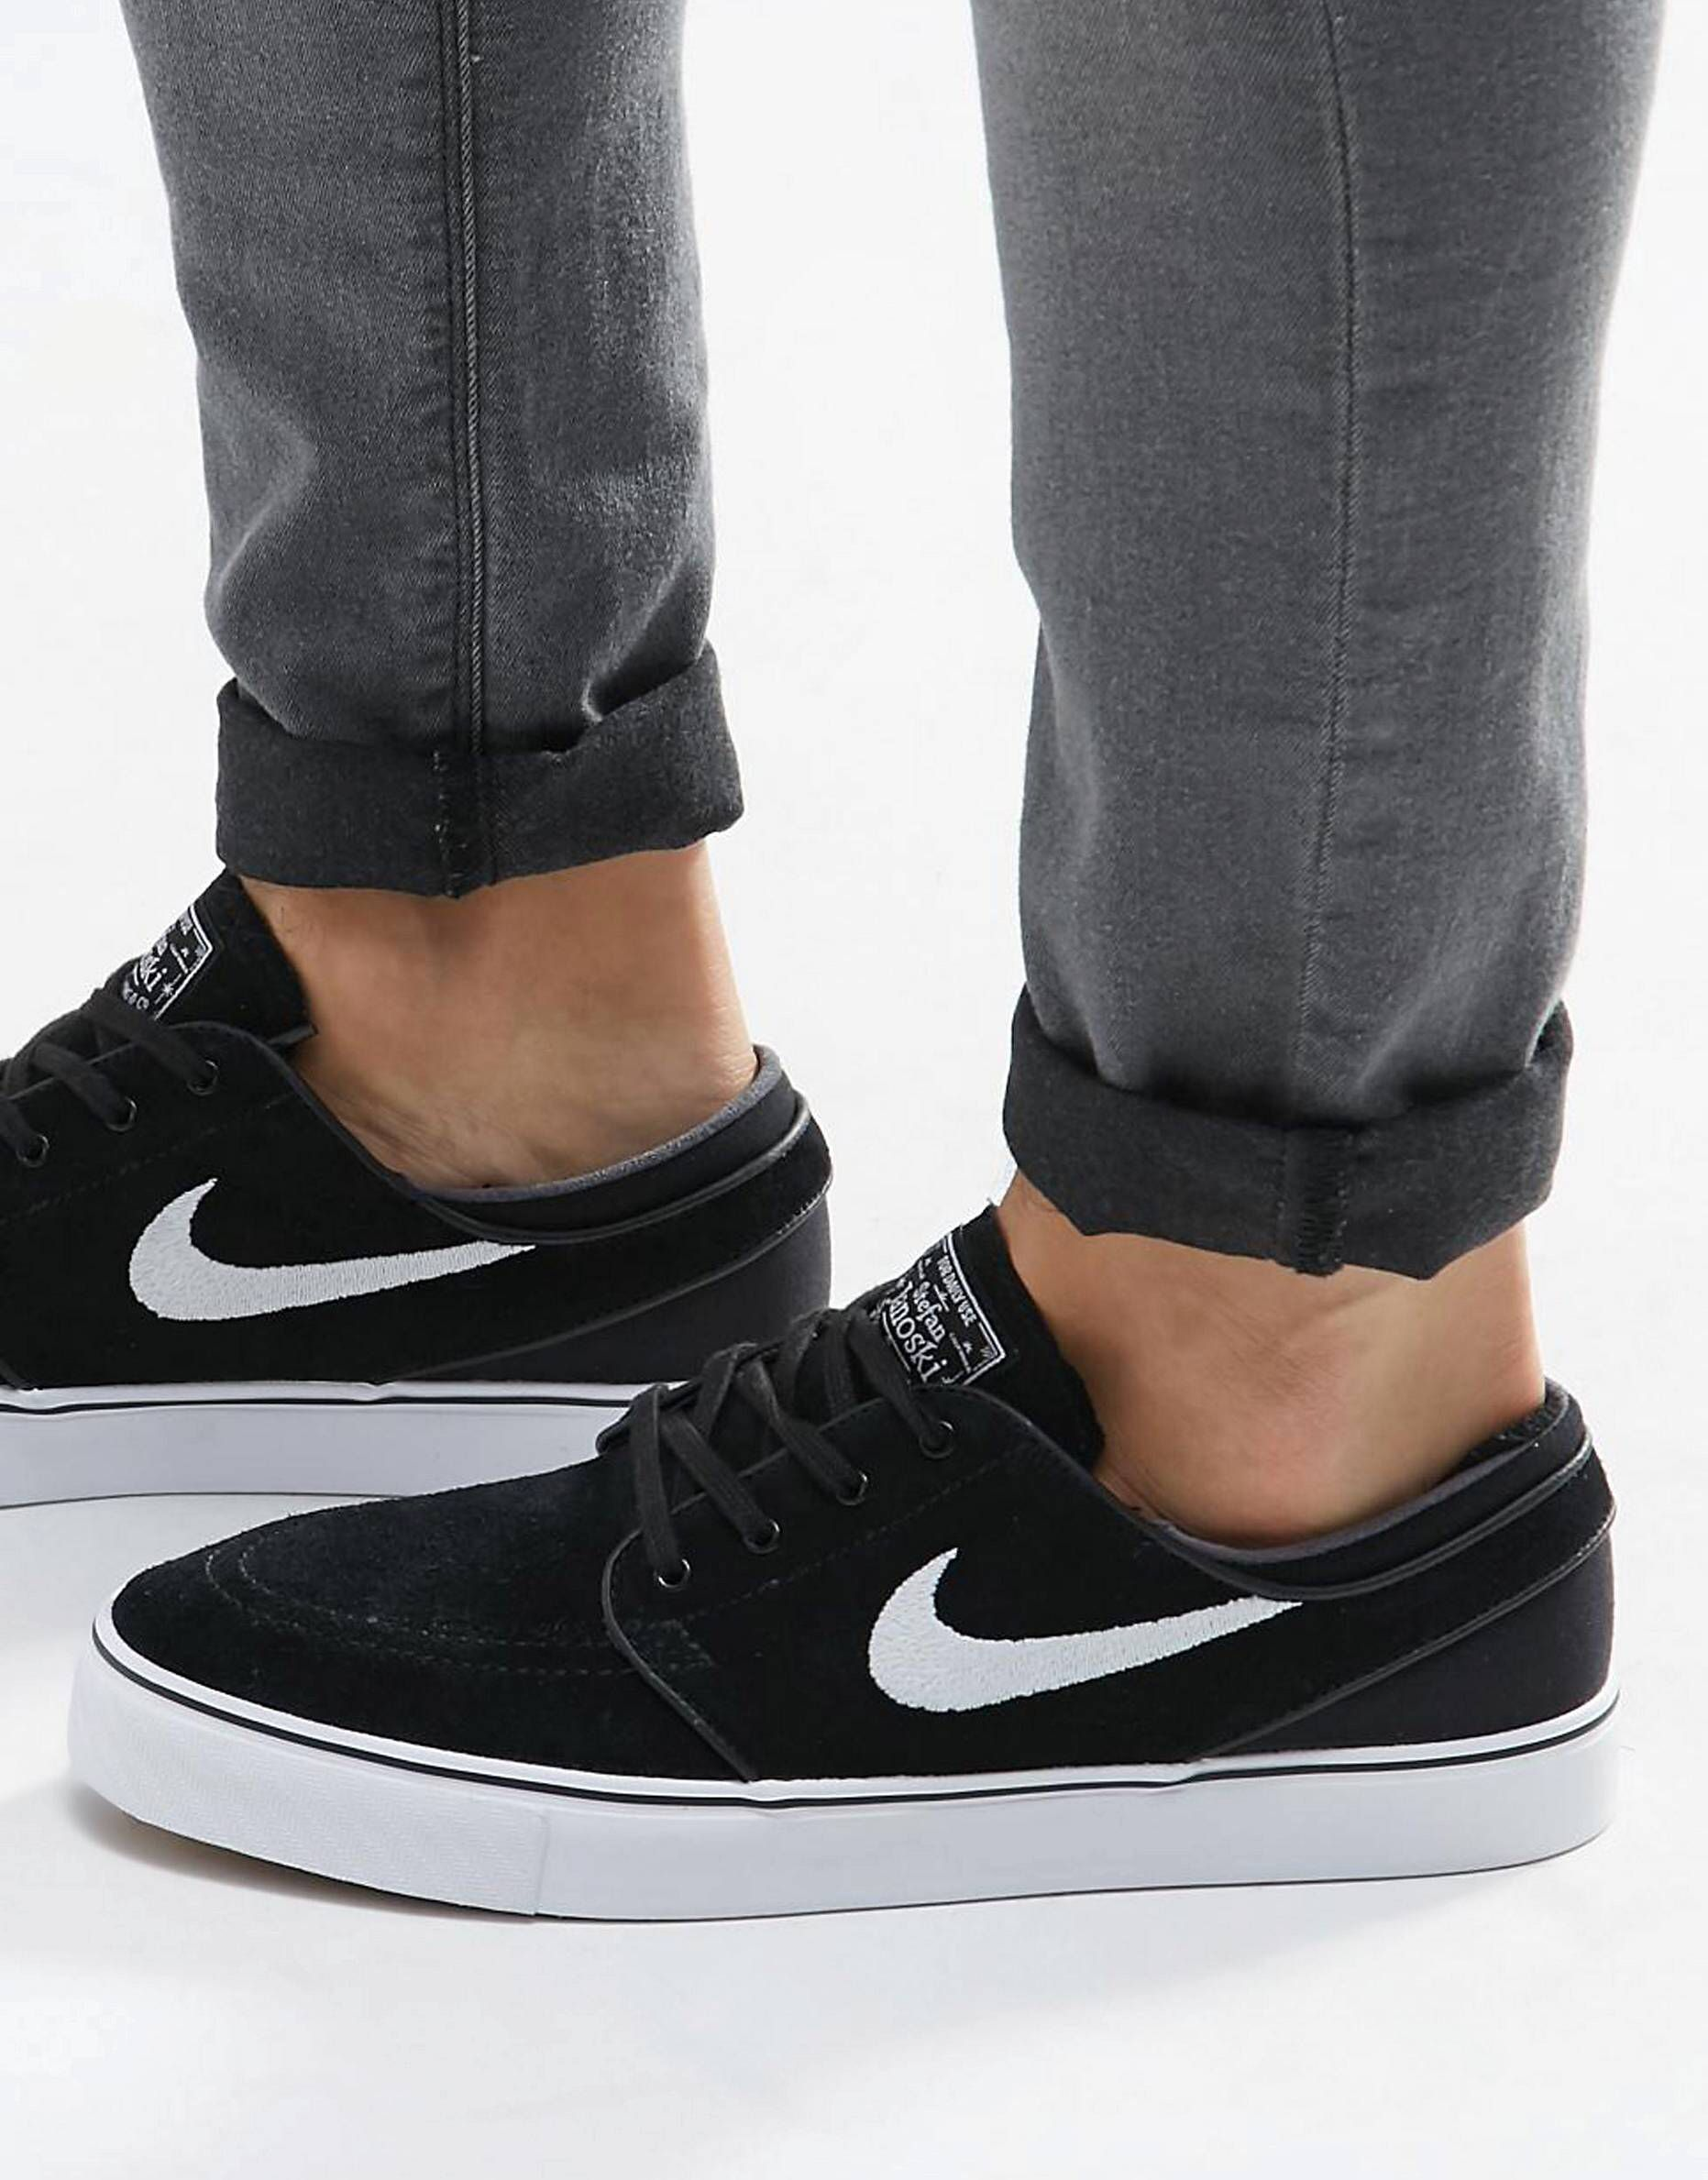 finest selection 9ec6a bc867 Buy Black Nike sb Sneakers for men at best price. Compare Sneakers prices  from online stores like Asos - Wossel Global